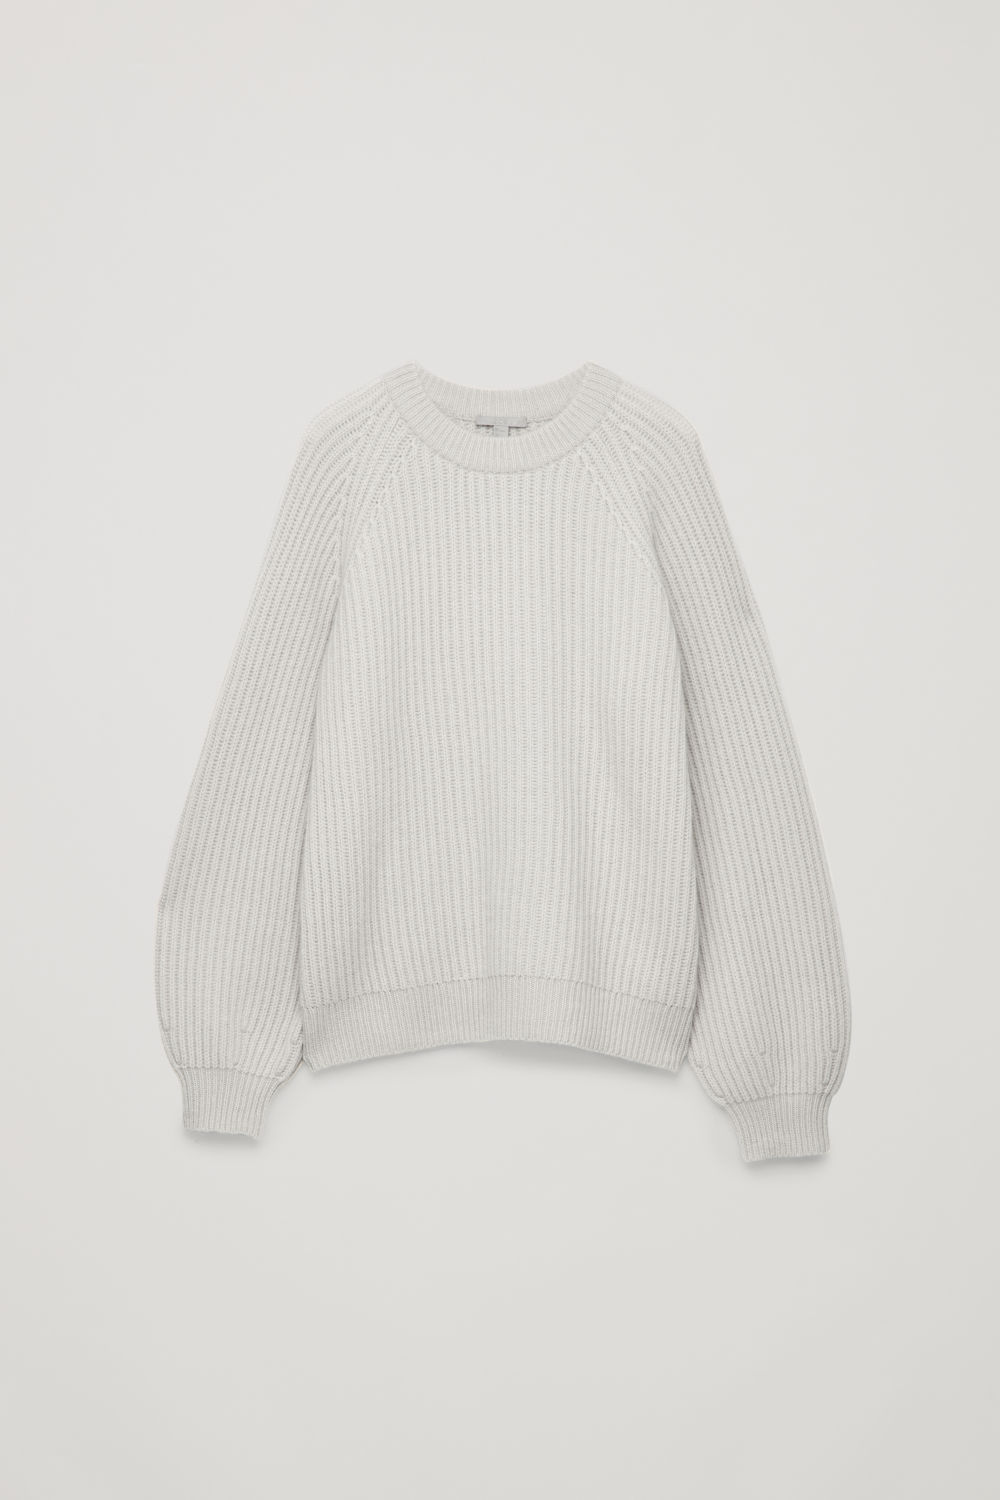 CHUNKY-KNIT CASHMERE JUMPER